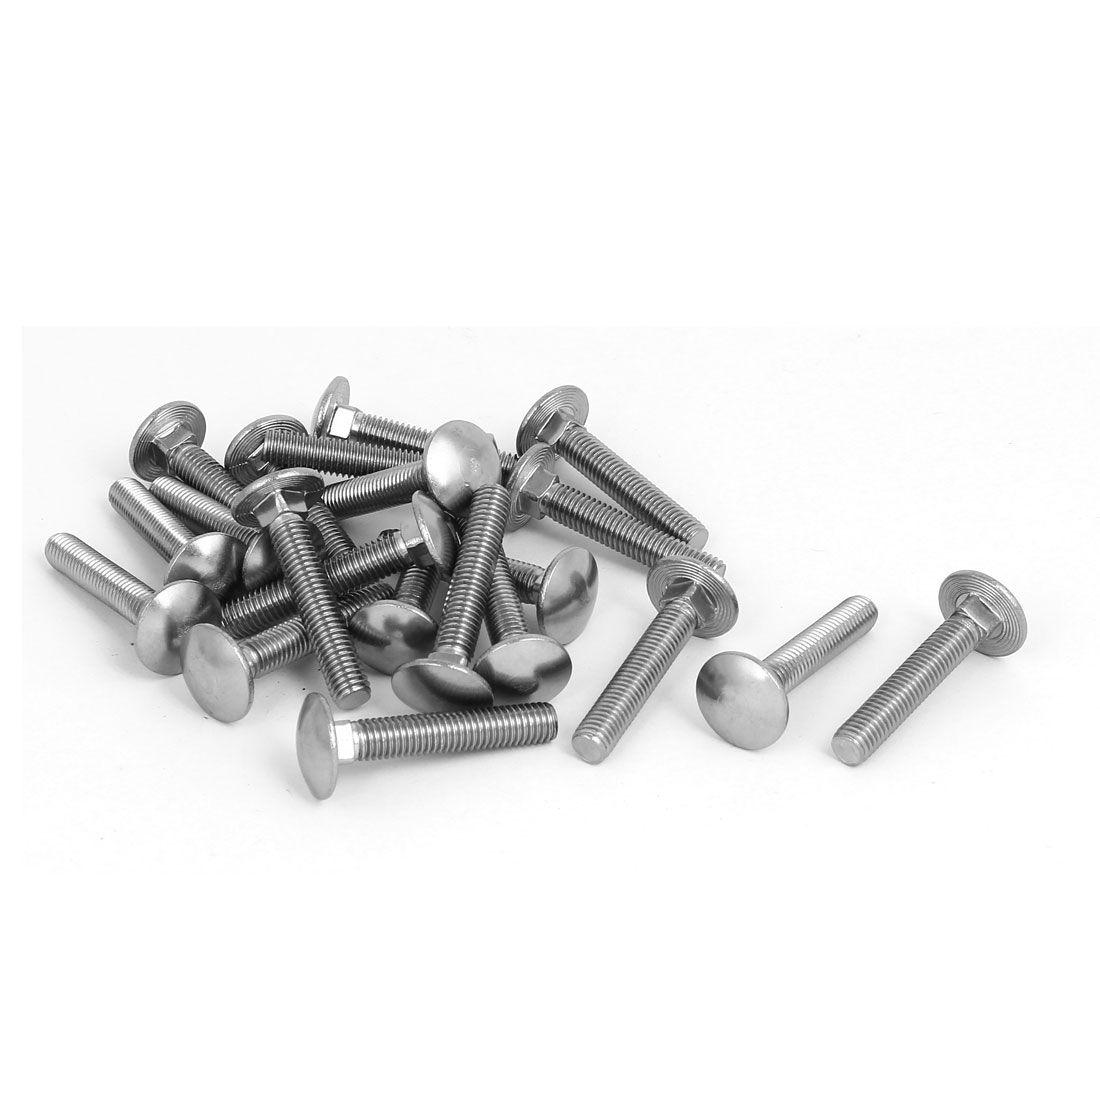 M8x45mm 304 Stainless Steel Round Cap Square Neck Trailer Carriage Bolts 20pcs